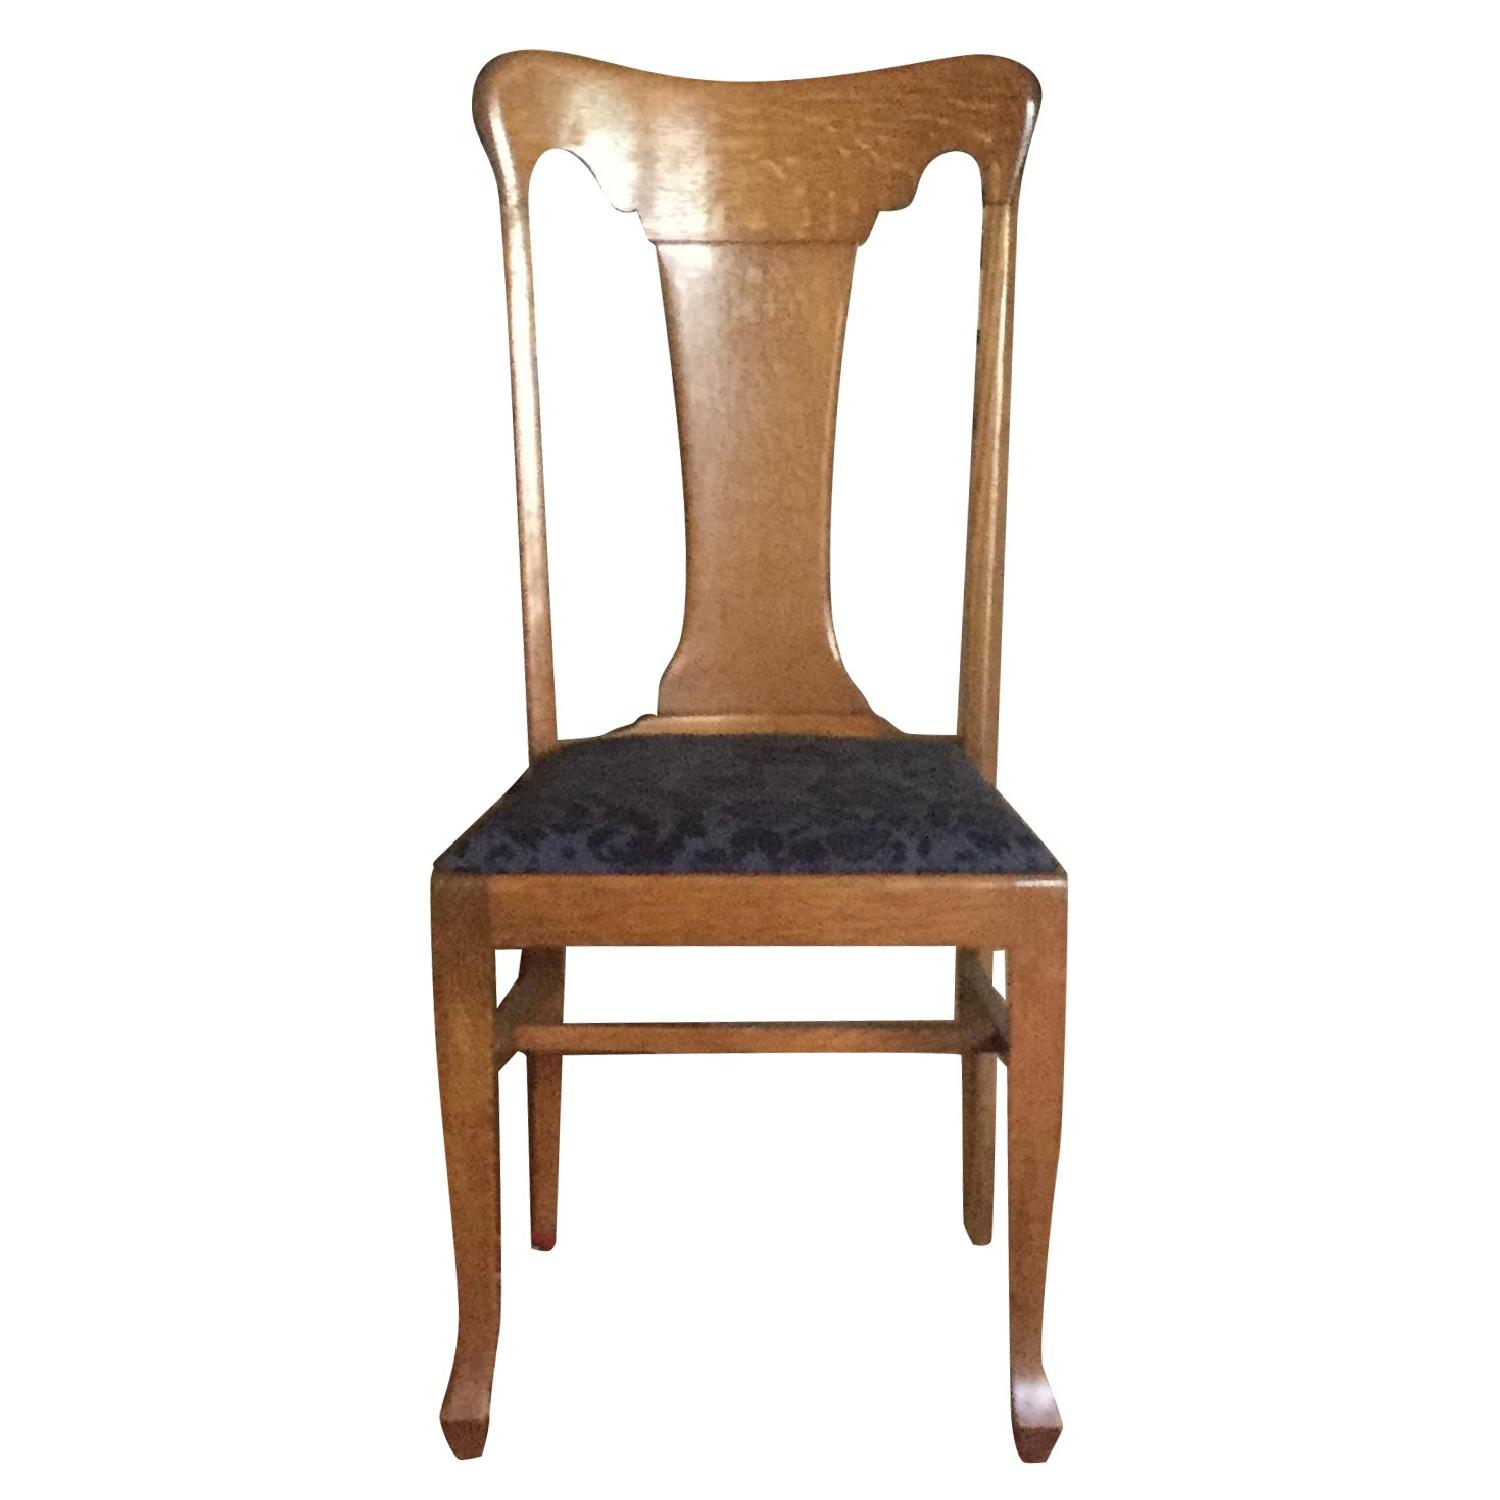 Sikes Chair Company Queen Anne Quarter-Sawn Oak Chairs